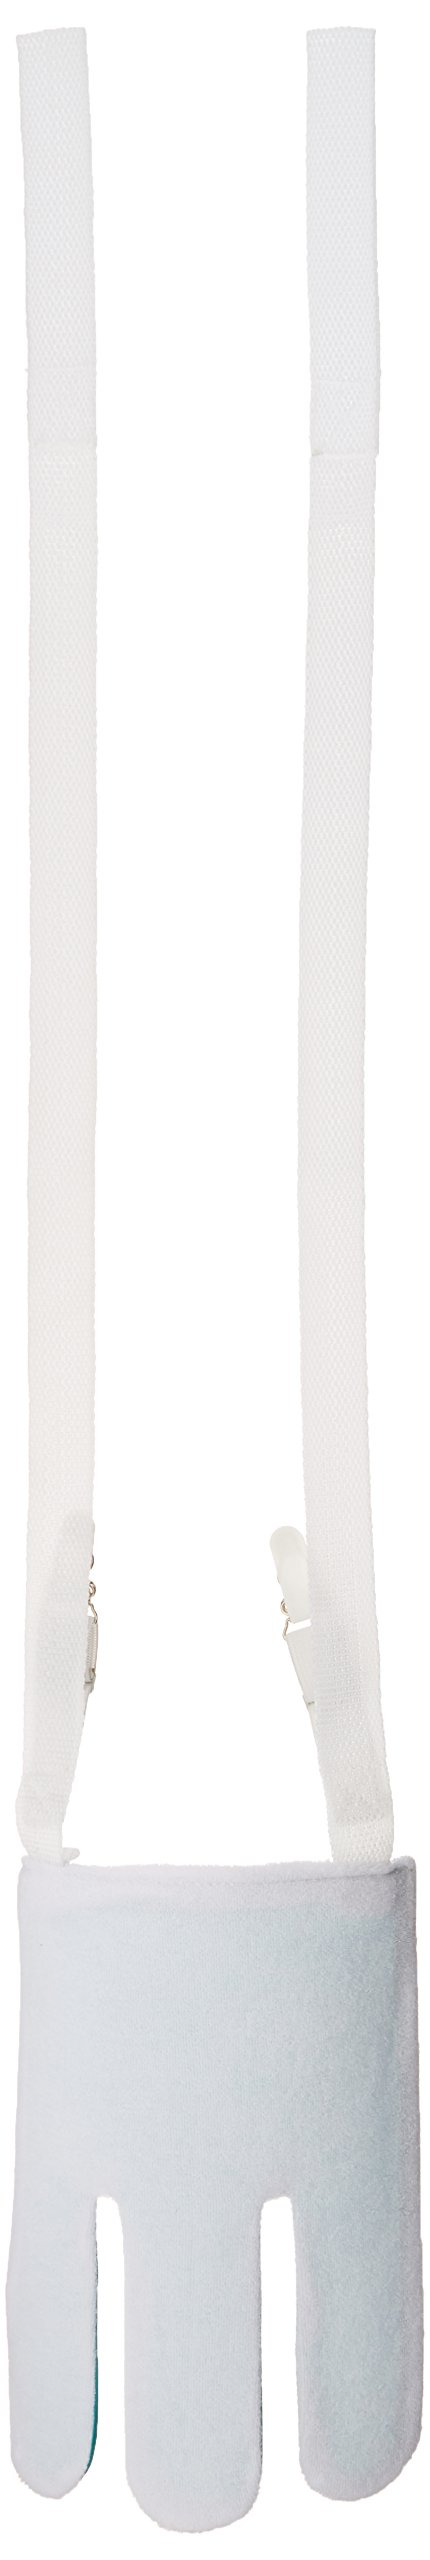 Sammons Preston Flexible Sock & Stocking Aid with Garters, Socks and Stockings Donner with Garter Connectors for Elderly and Disabled, ADL Tool for Getting Dressed, Independent Dressing Assist